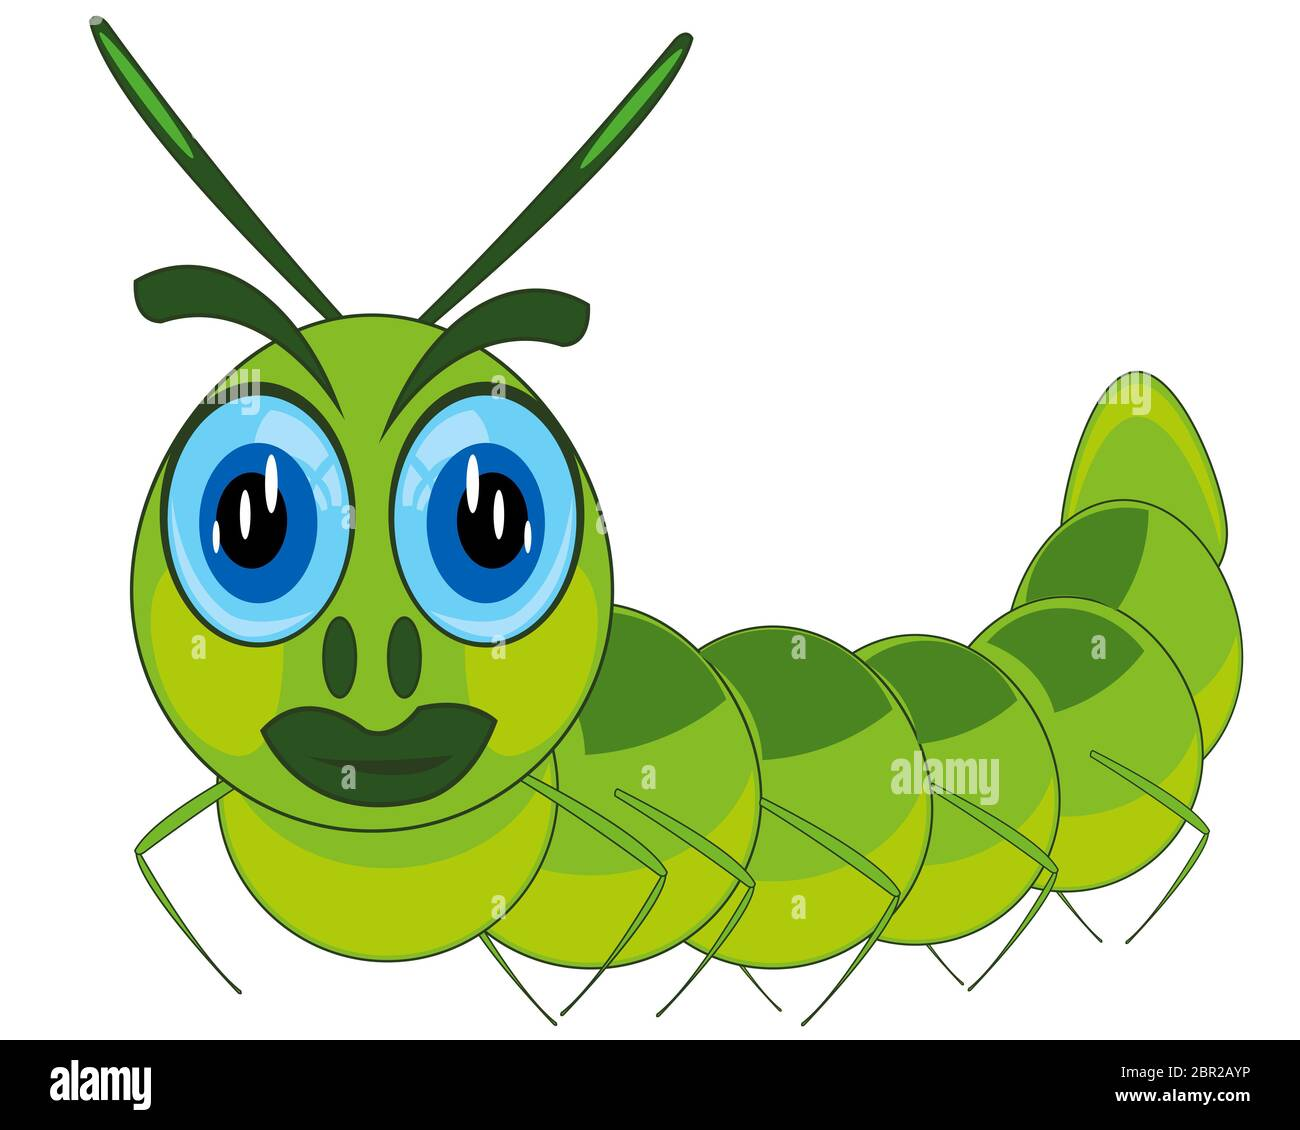 Cartoon Of The Green Caterpillar On White Background Is Insulated